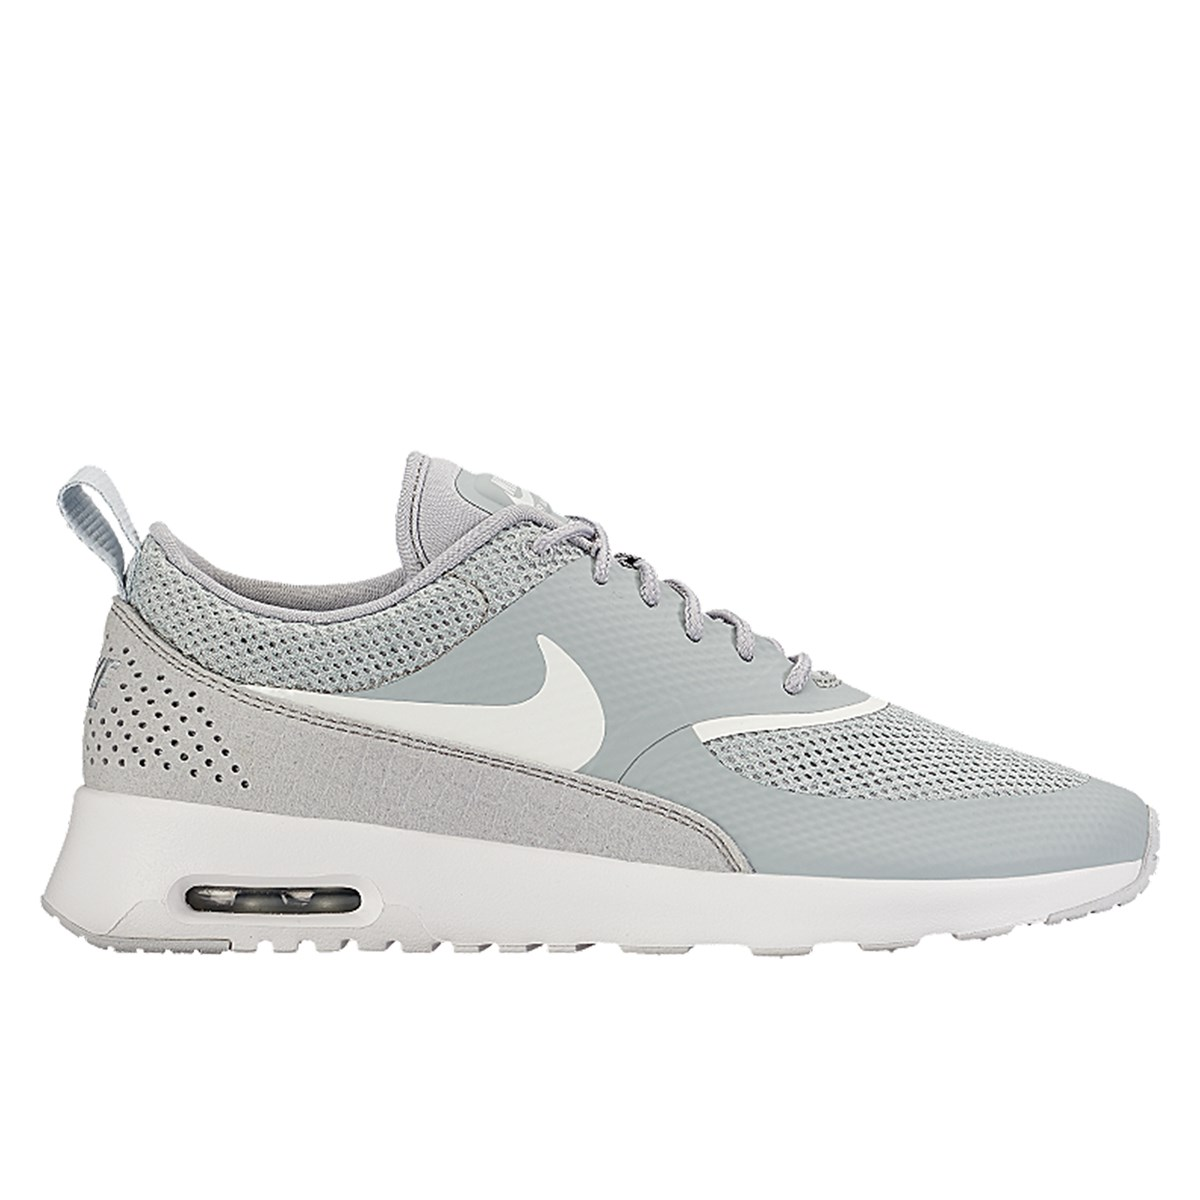 3d9a7e3a Women's Air Max Thea Grey Sneakers. Previous. default view; ALT1